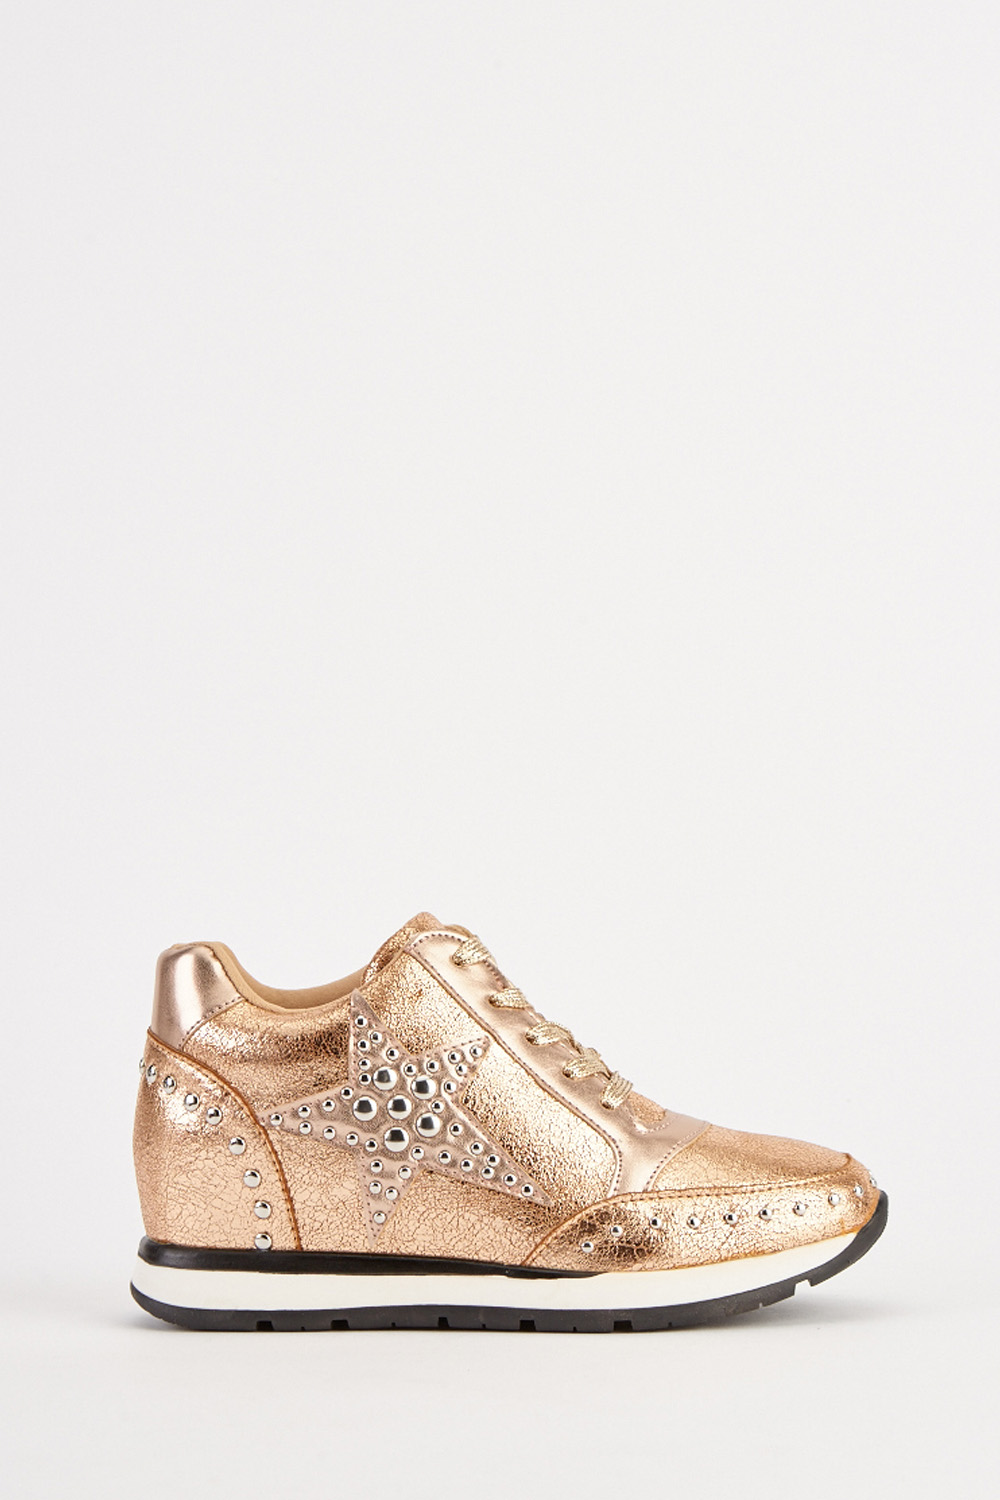 d508bd9e589e Metallic Lace Up Wedge Trainers - Just £5